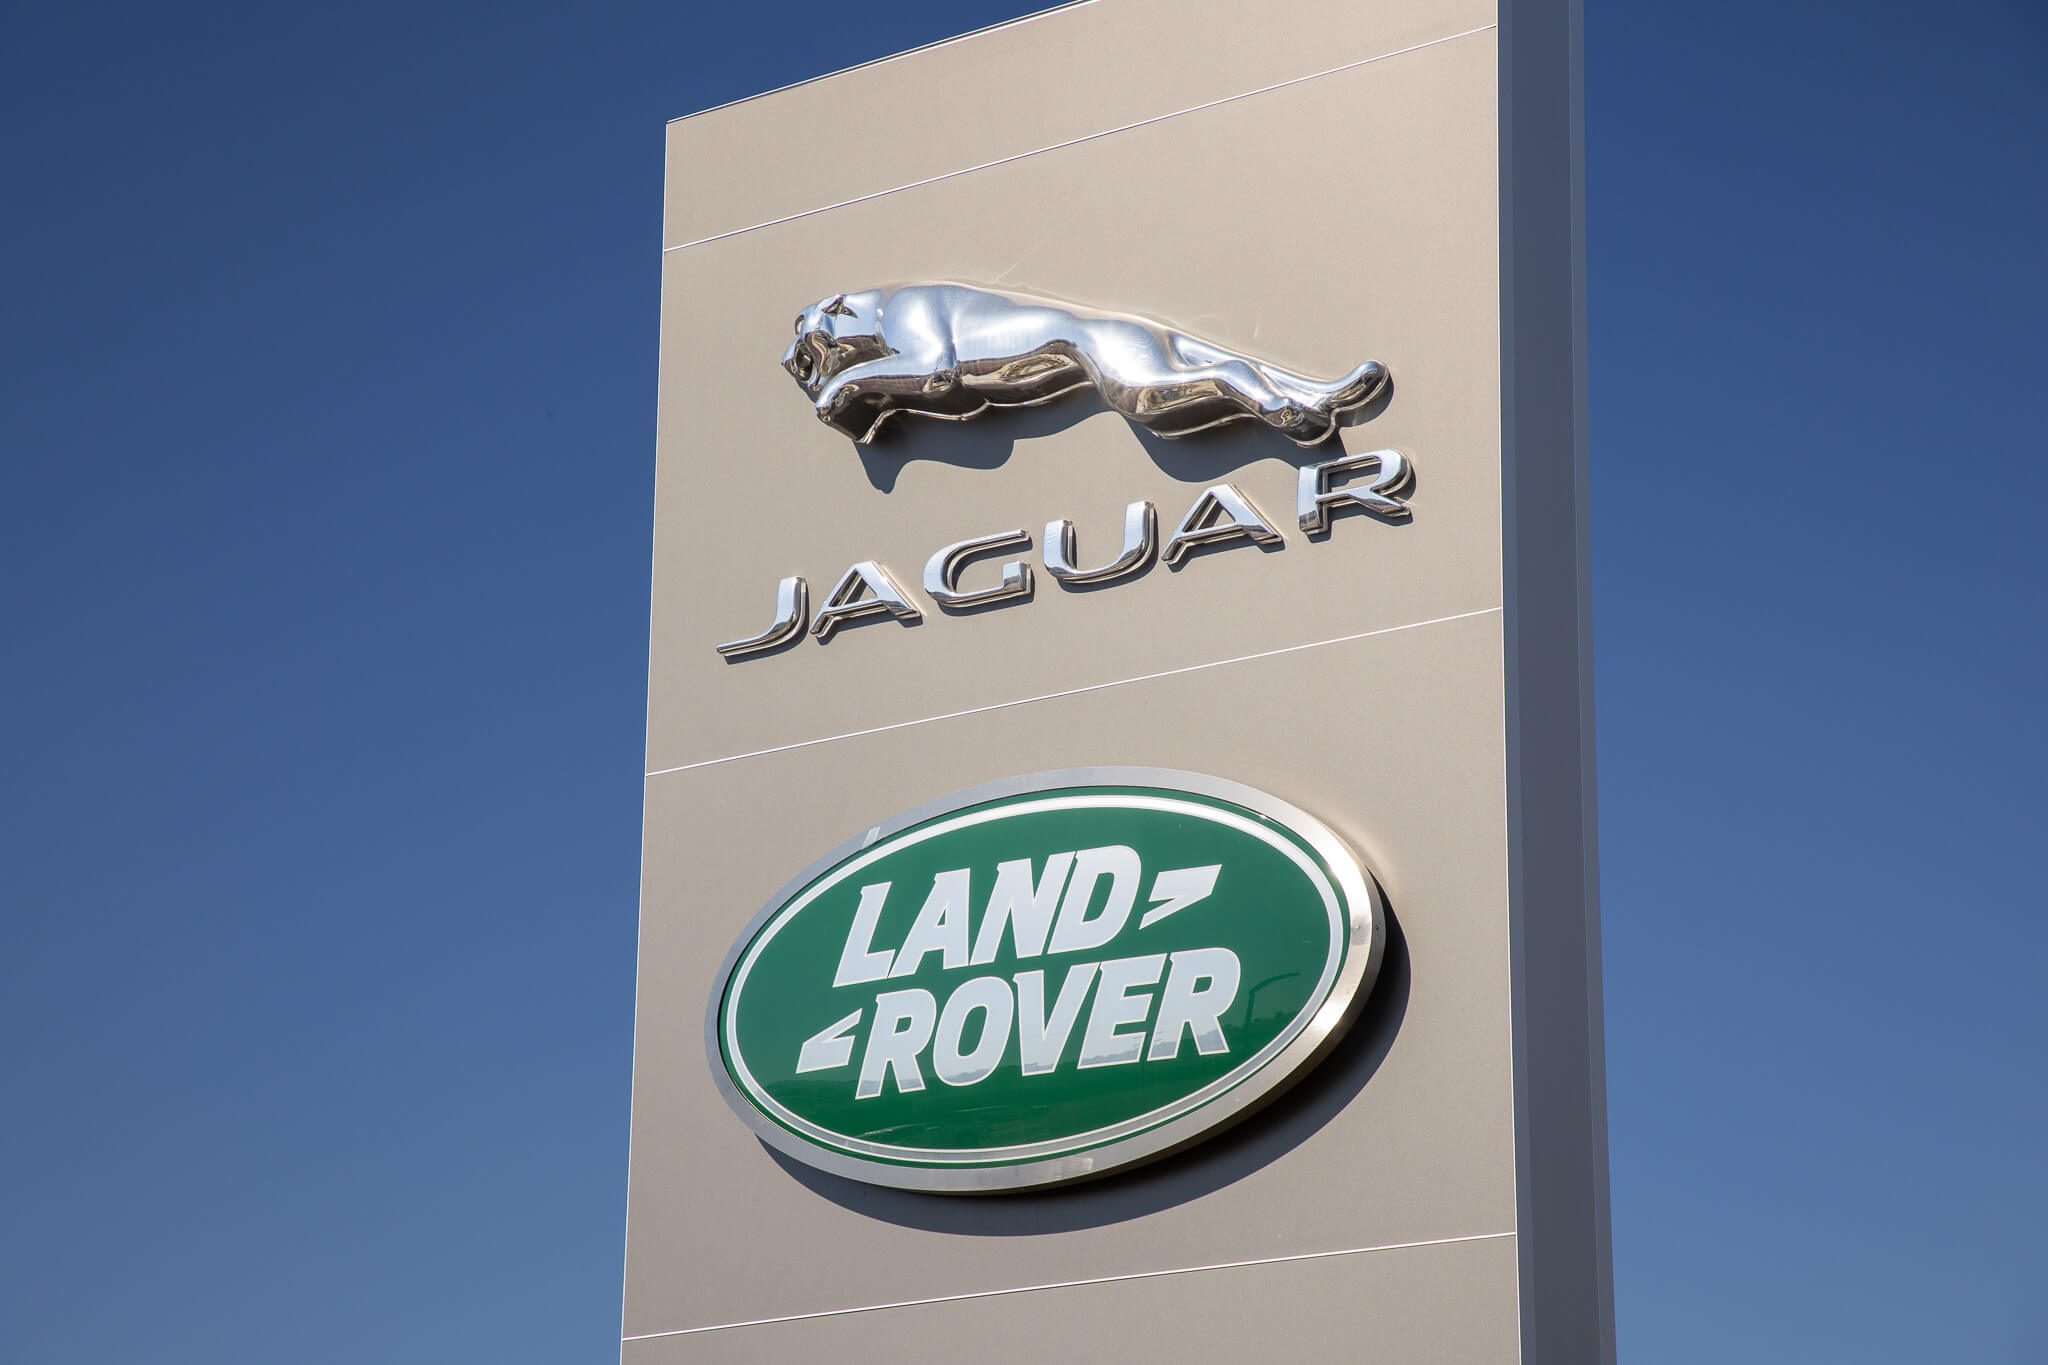 Signage at Land Rover South Bay